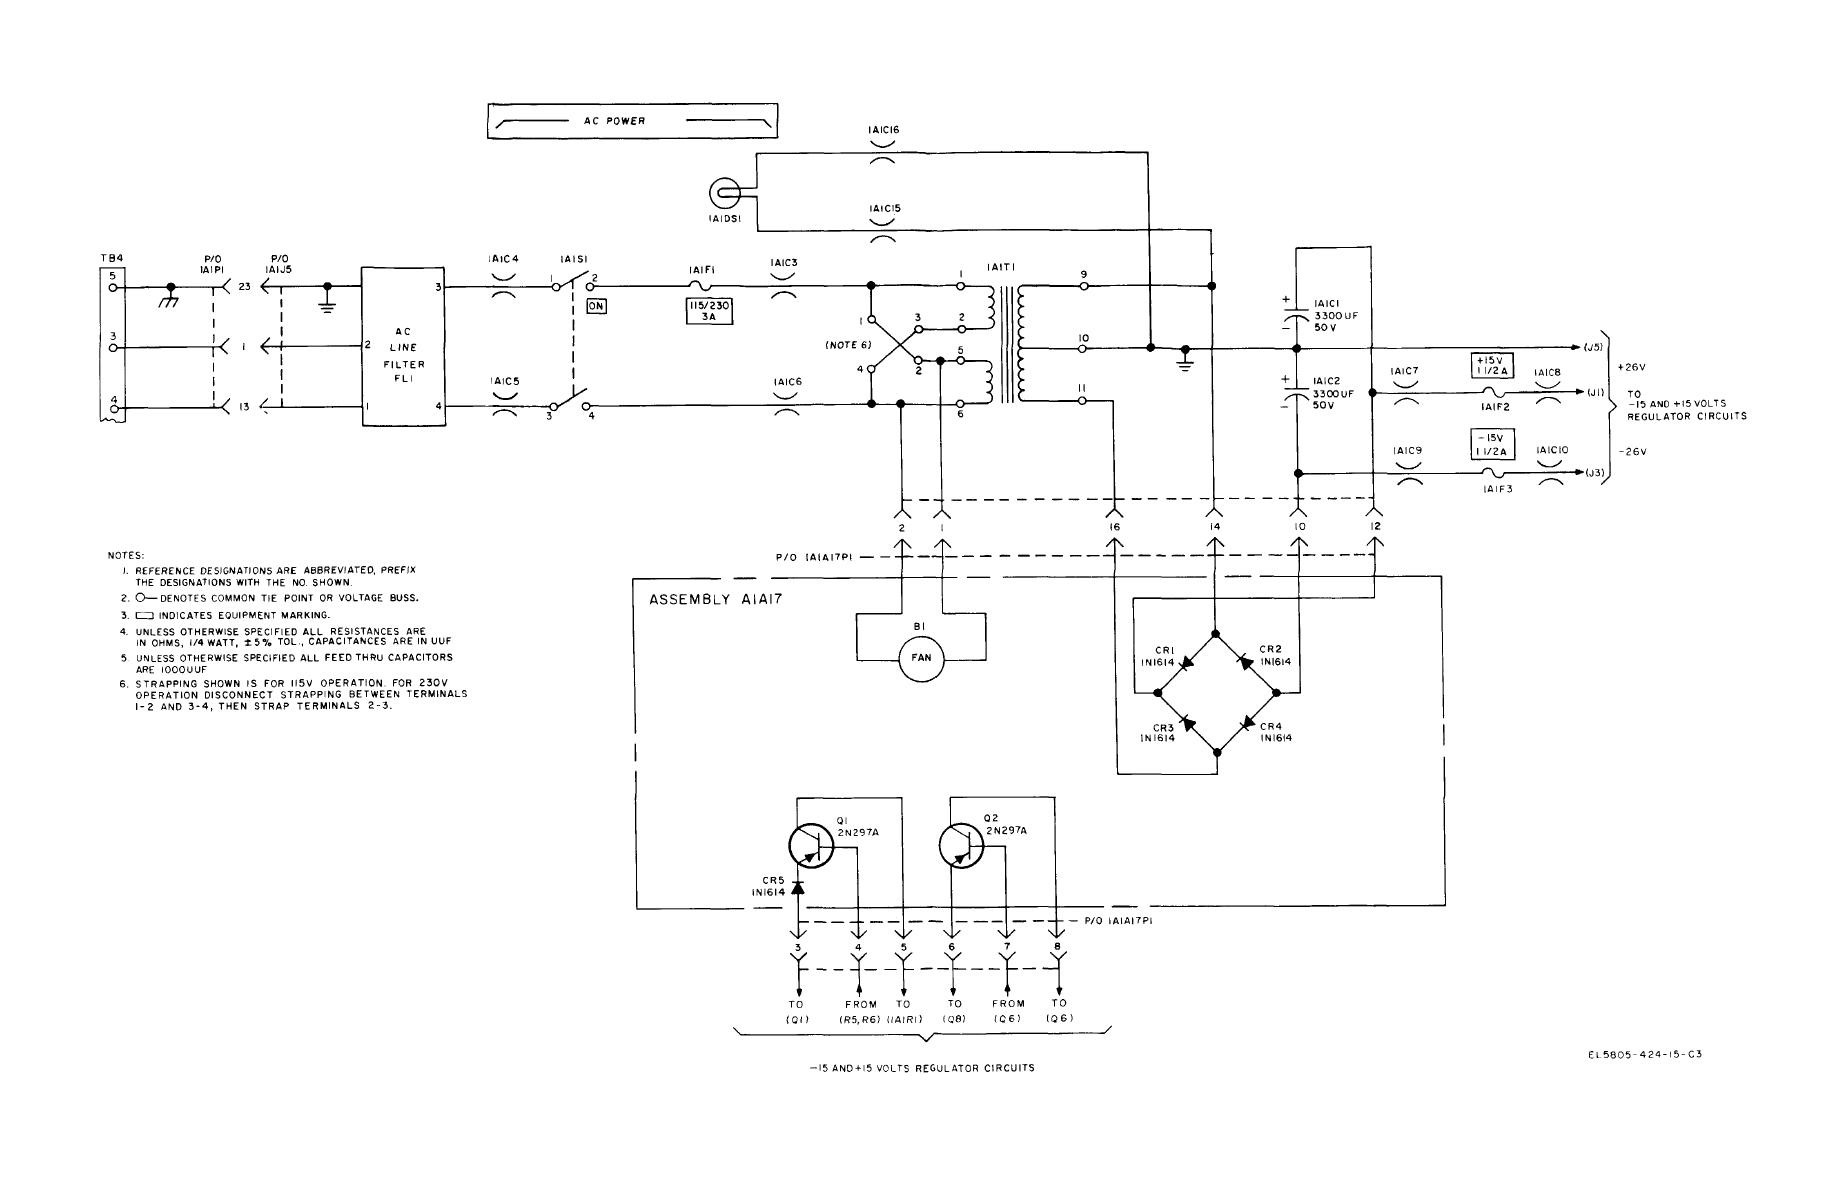 Figure 8-20. Ac power and rectifier circuit, modem chis ... on